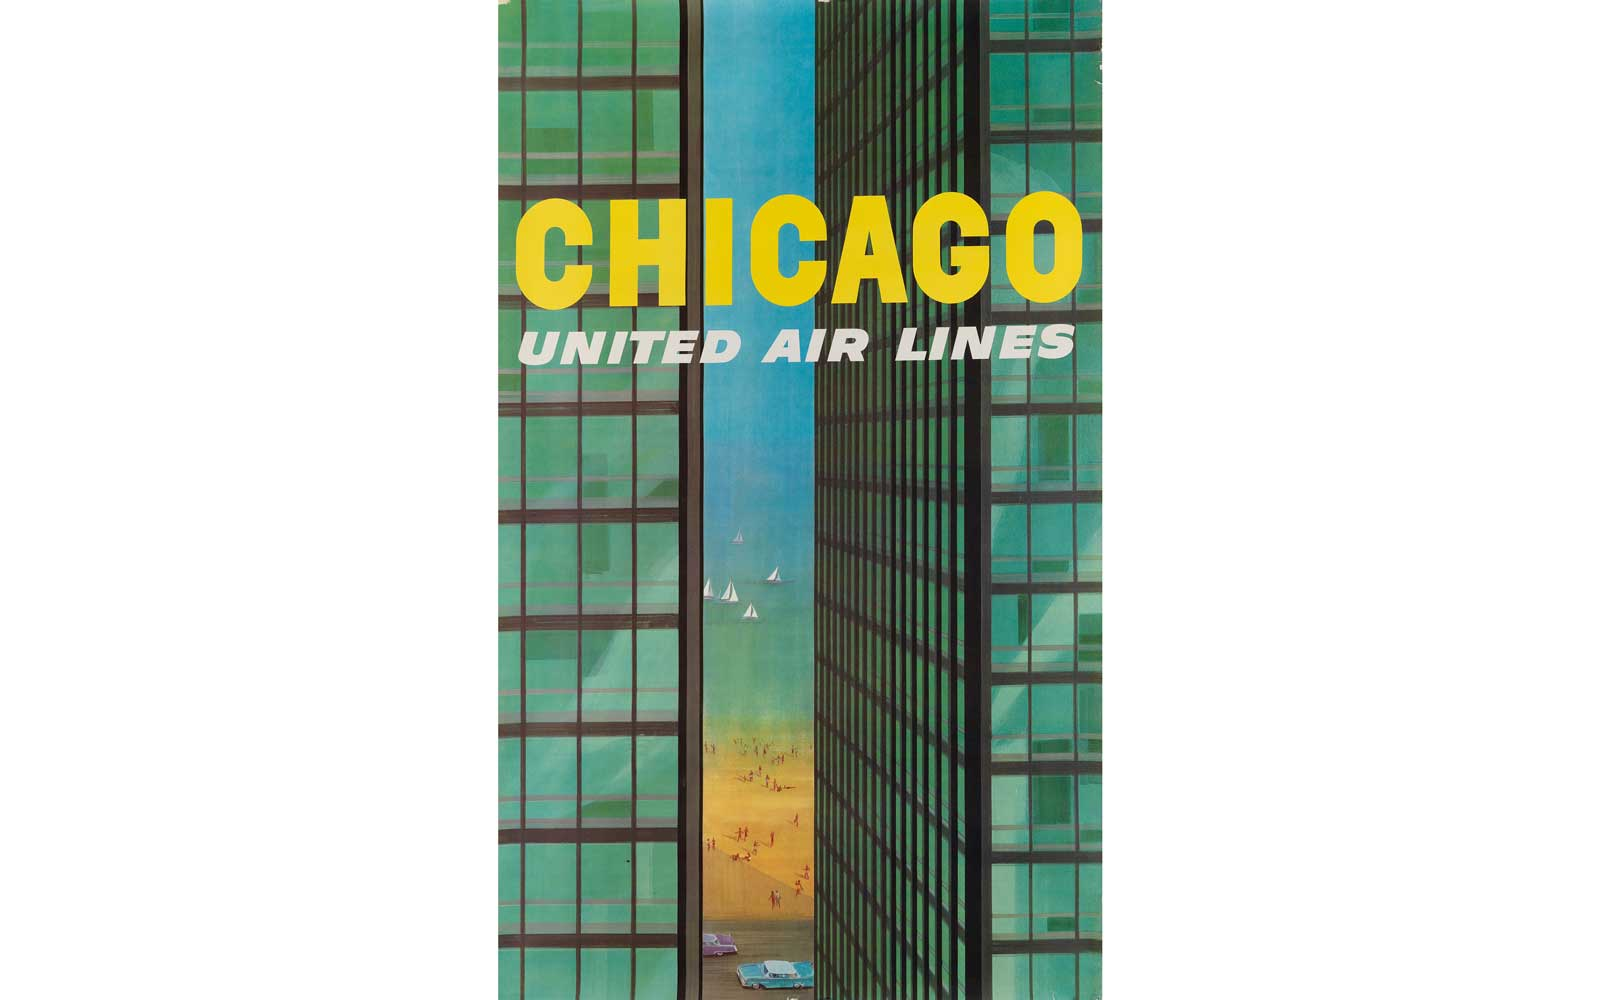 Chicago United Airlines